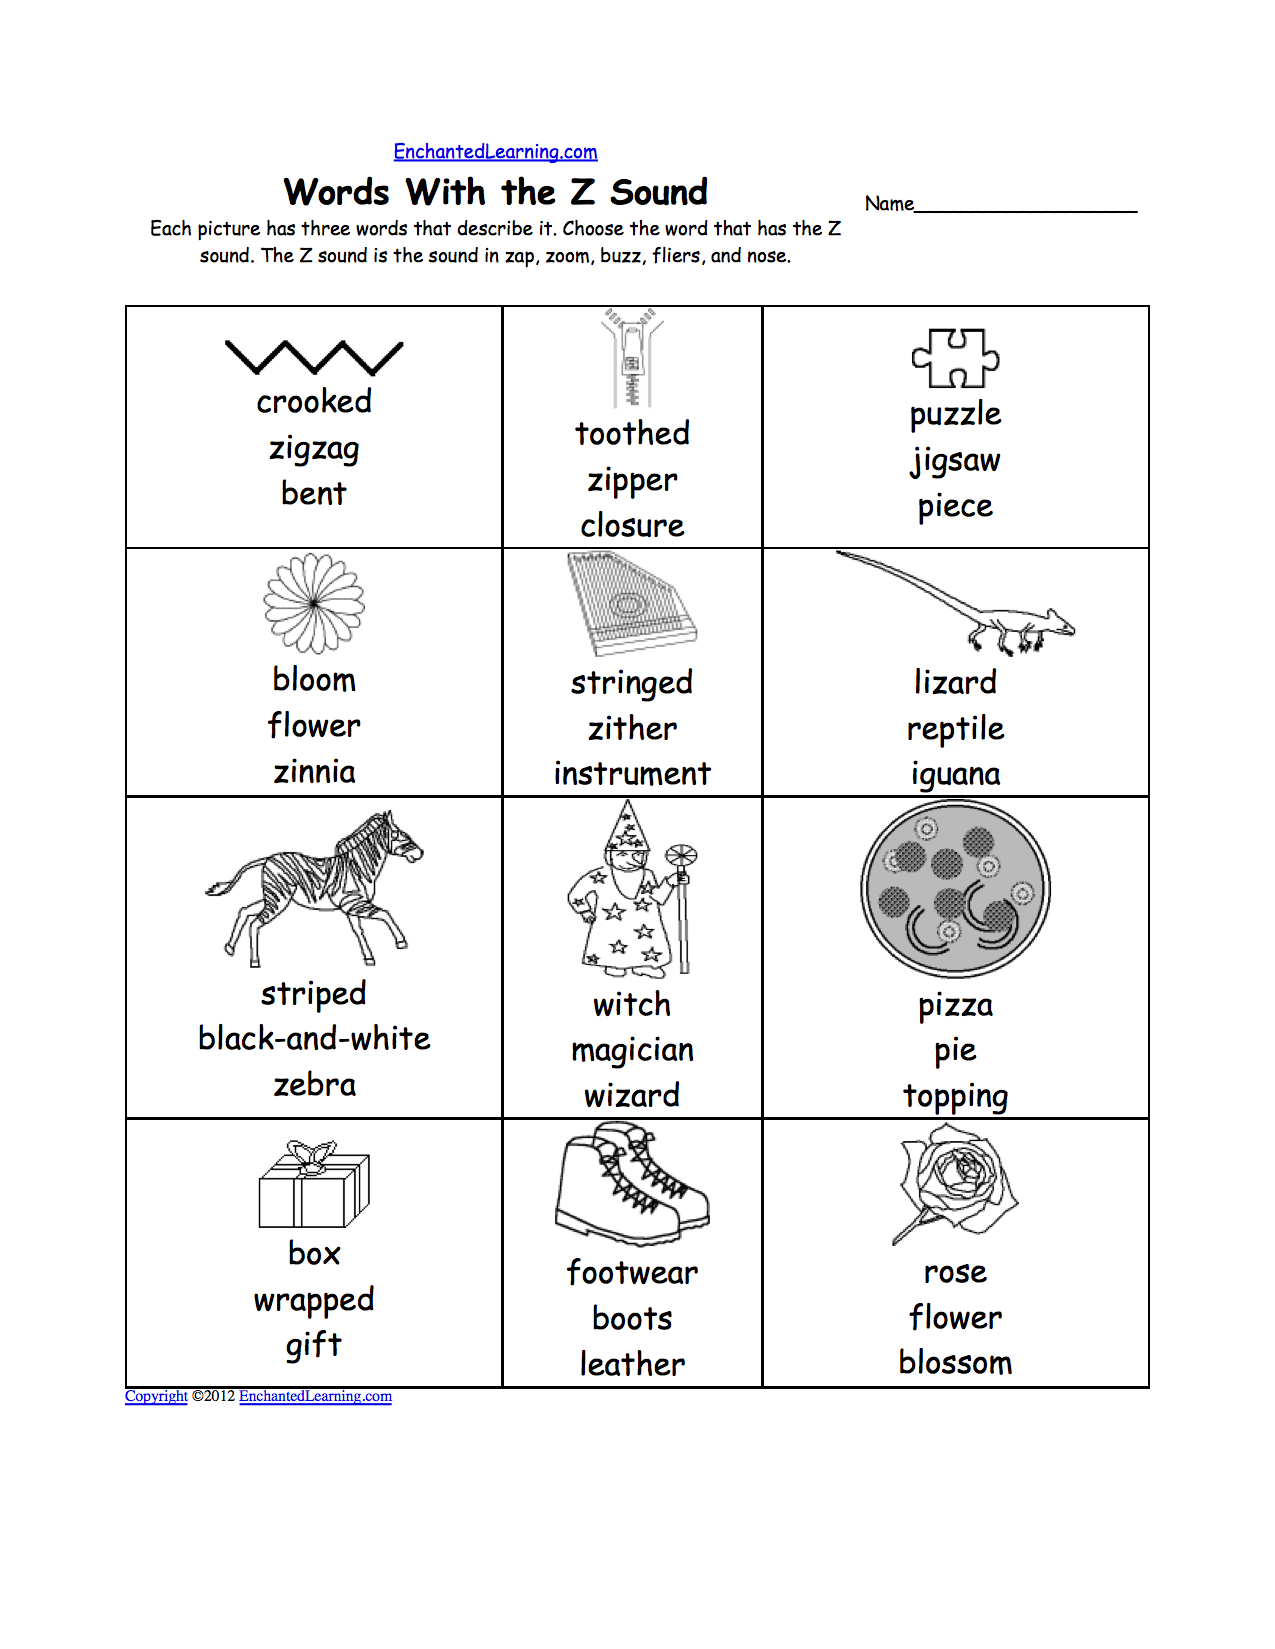 Aldiablosus  Fascinating Phonics Worksheets Multiple Choice Worksheets To Print  With Gorgeous Phonics Worksheets Multiple Choice Worksheets To Print  Enchantedlearningcom With Astounding Subtracting Integer Worksheet Also Transposition Of Formulae Worksheet In Addition Pre Preschool Worksheets And Operation Of Integers Worksheets As Well As Apostrophes For Contraction Worksheet Additionally Er Ir Re Verbs Worksheets From Enchantedlearningcom With Aldiablosus  Gorgeous Phonics Worksheets Multiple Choice Worksheets To Print  With Astounding Phonics Worksheets Multiple Choice Worksheets To Print  Enchantedlearningcom And Fascinating Subtracting Integer Worksheet Also Transposition Of Formulae Worksheet In Addition Pre Preschool Worksheets From Enchantedlearningcom